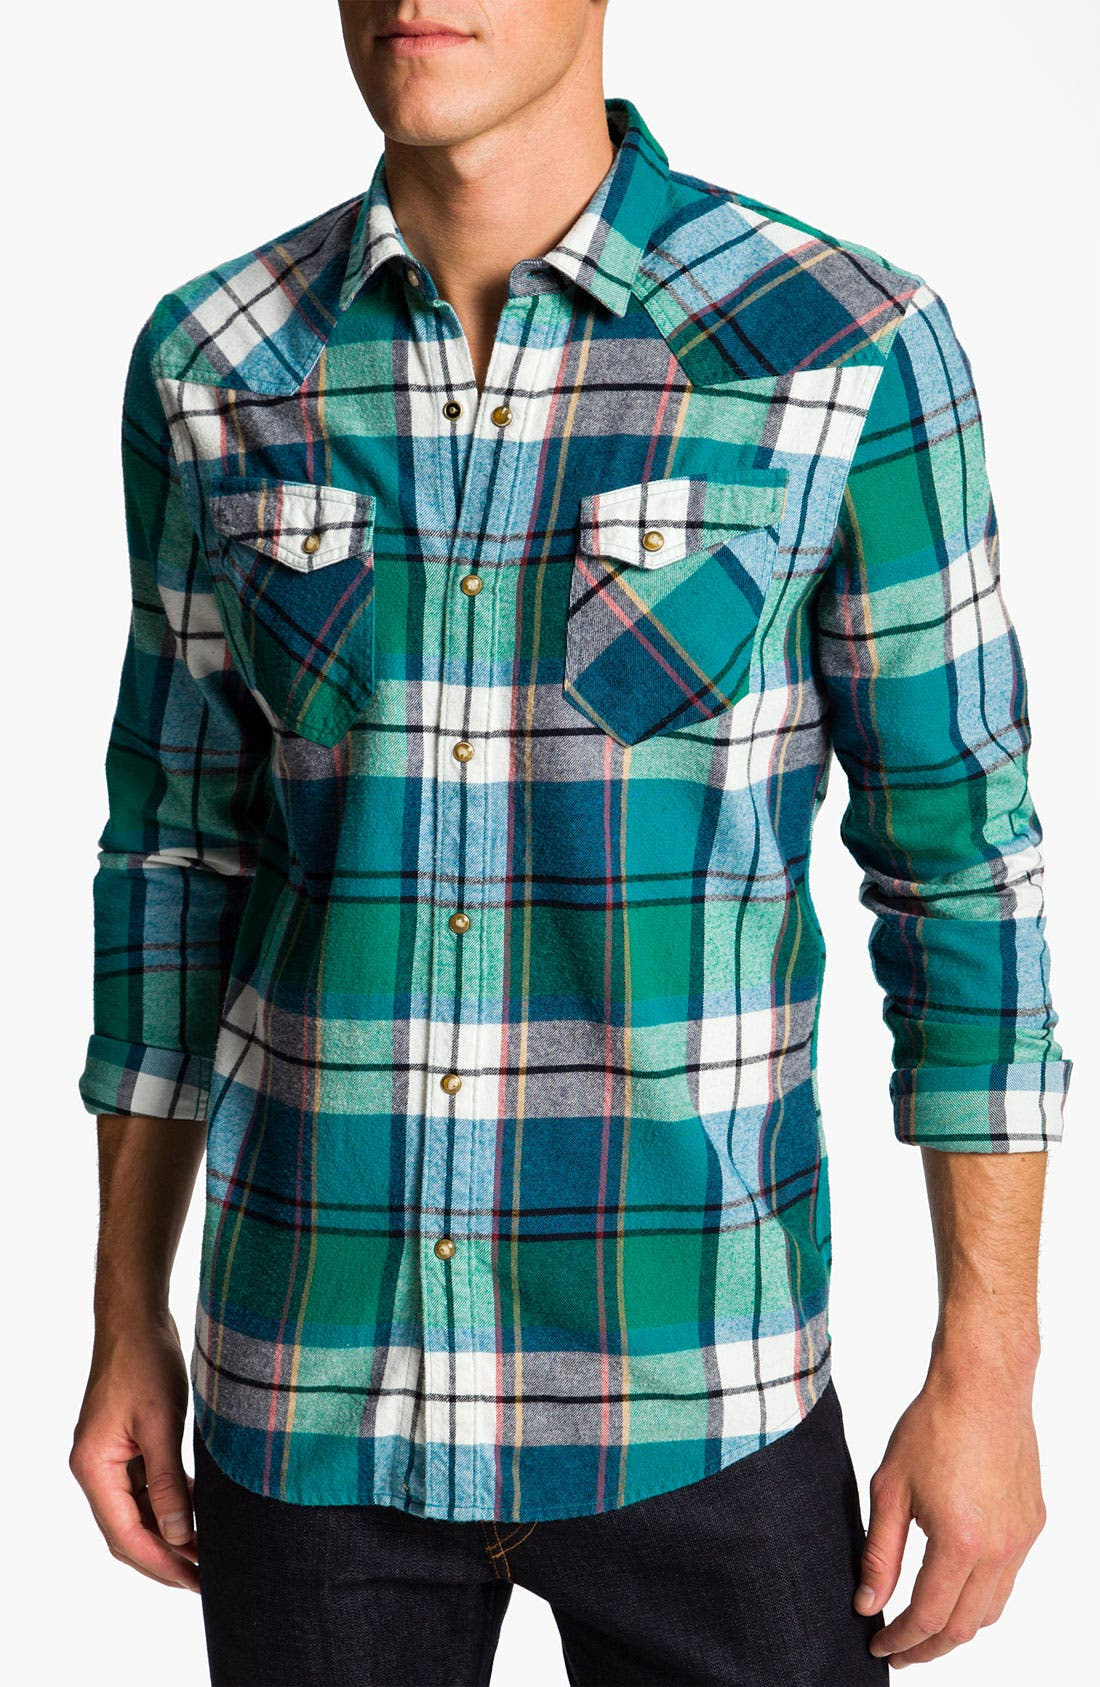 Main Image - The Rail by Public Opinion Cotton Flannel Shirt